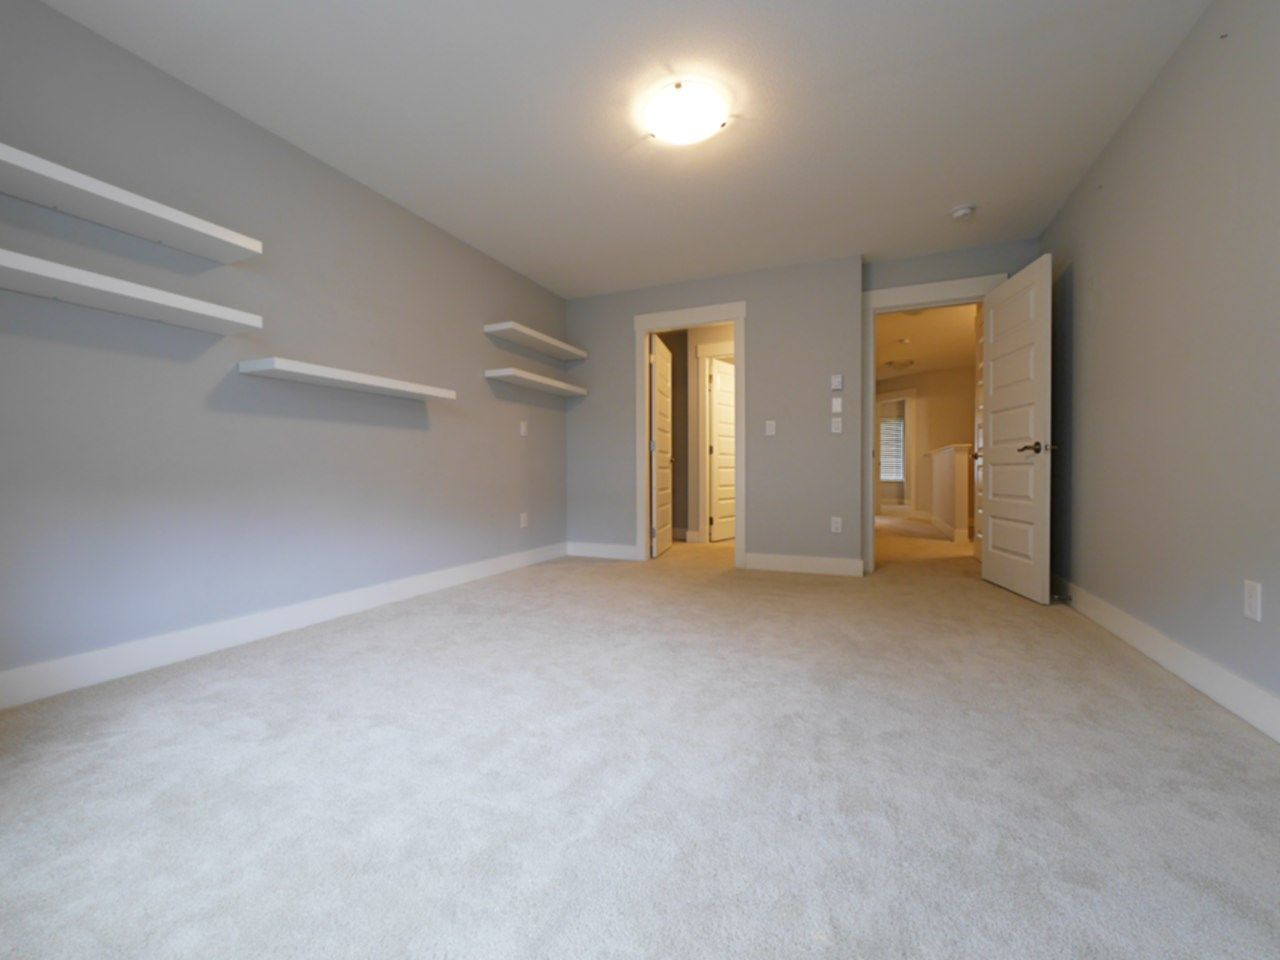 """Photo 14: Photos: 36 19525 73 Avenue in Surrey: Clayton Townhouse for sale in """"Uptown Clayton"""" (Cloverdale)  : MLS®# R2069814"""